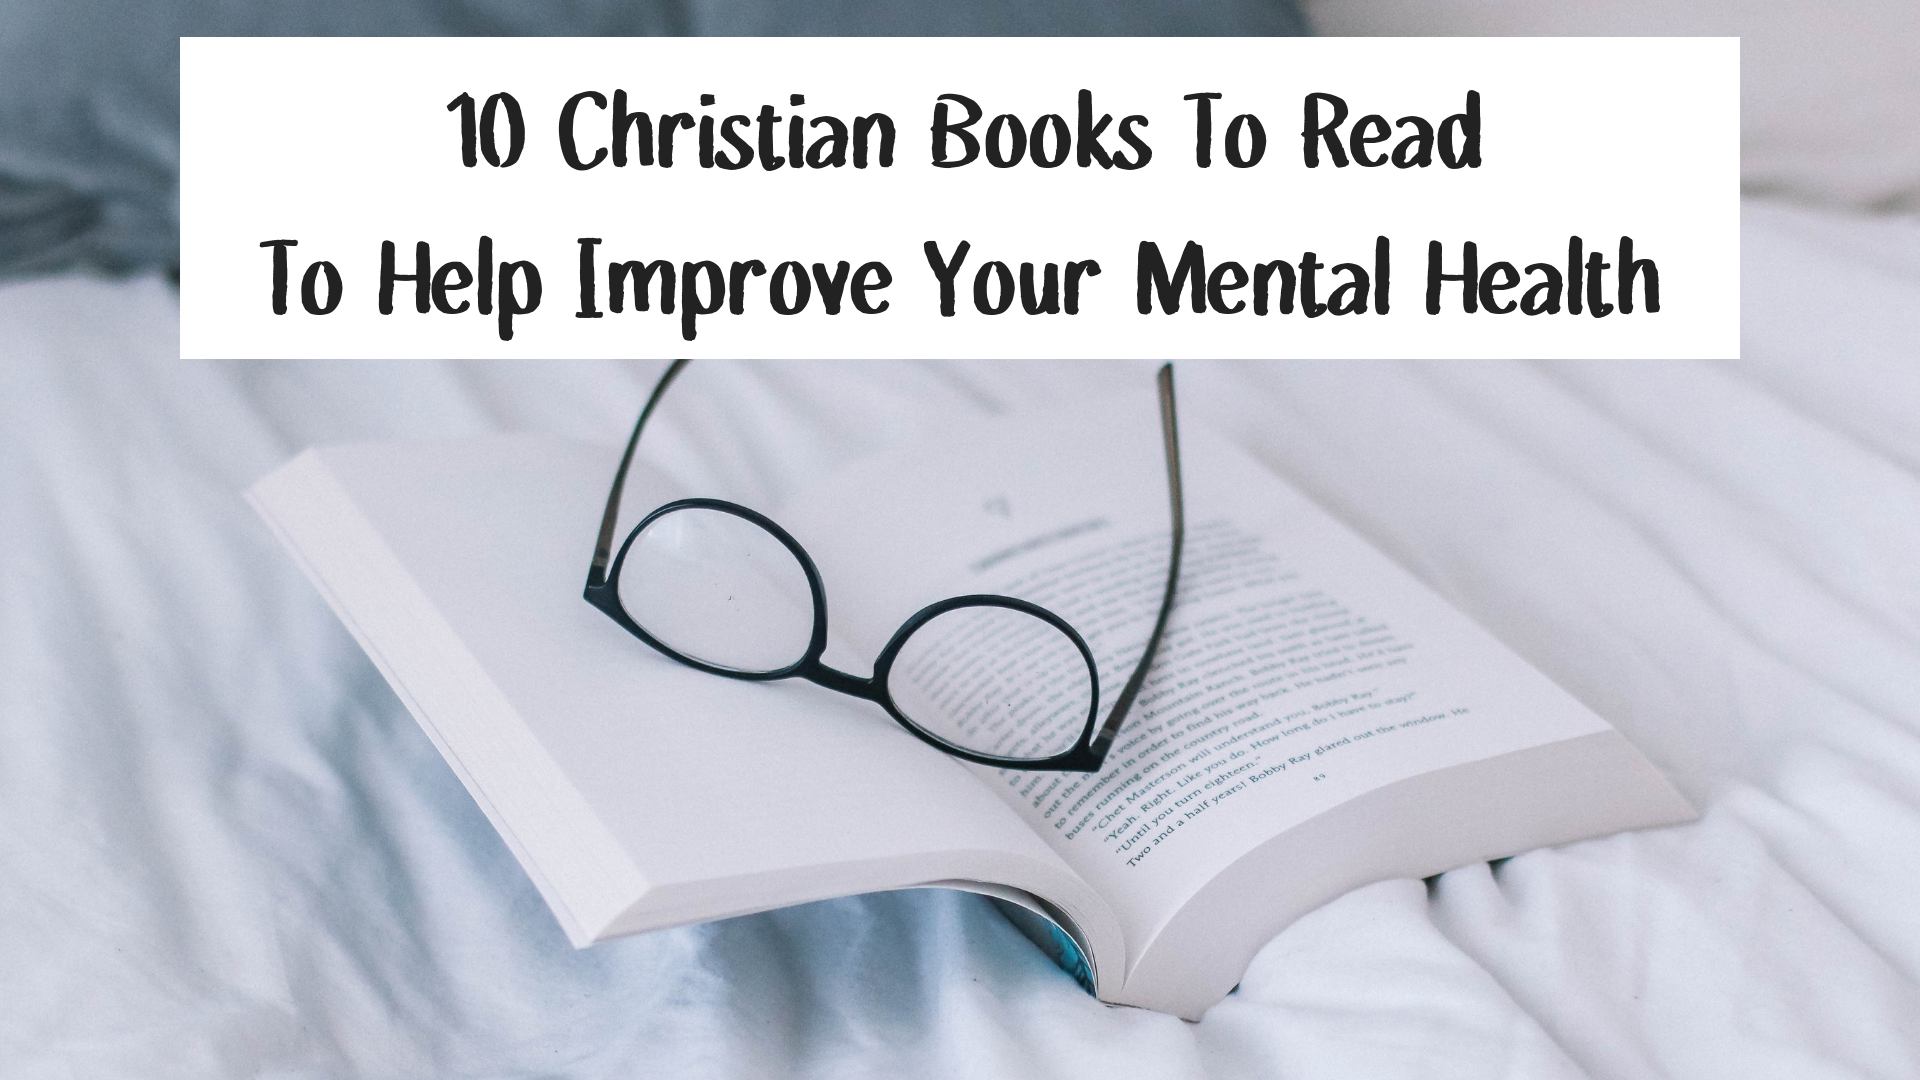 10 Christian Books To Read To hep Improve Your Mental Health